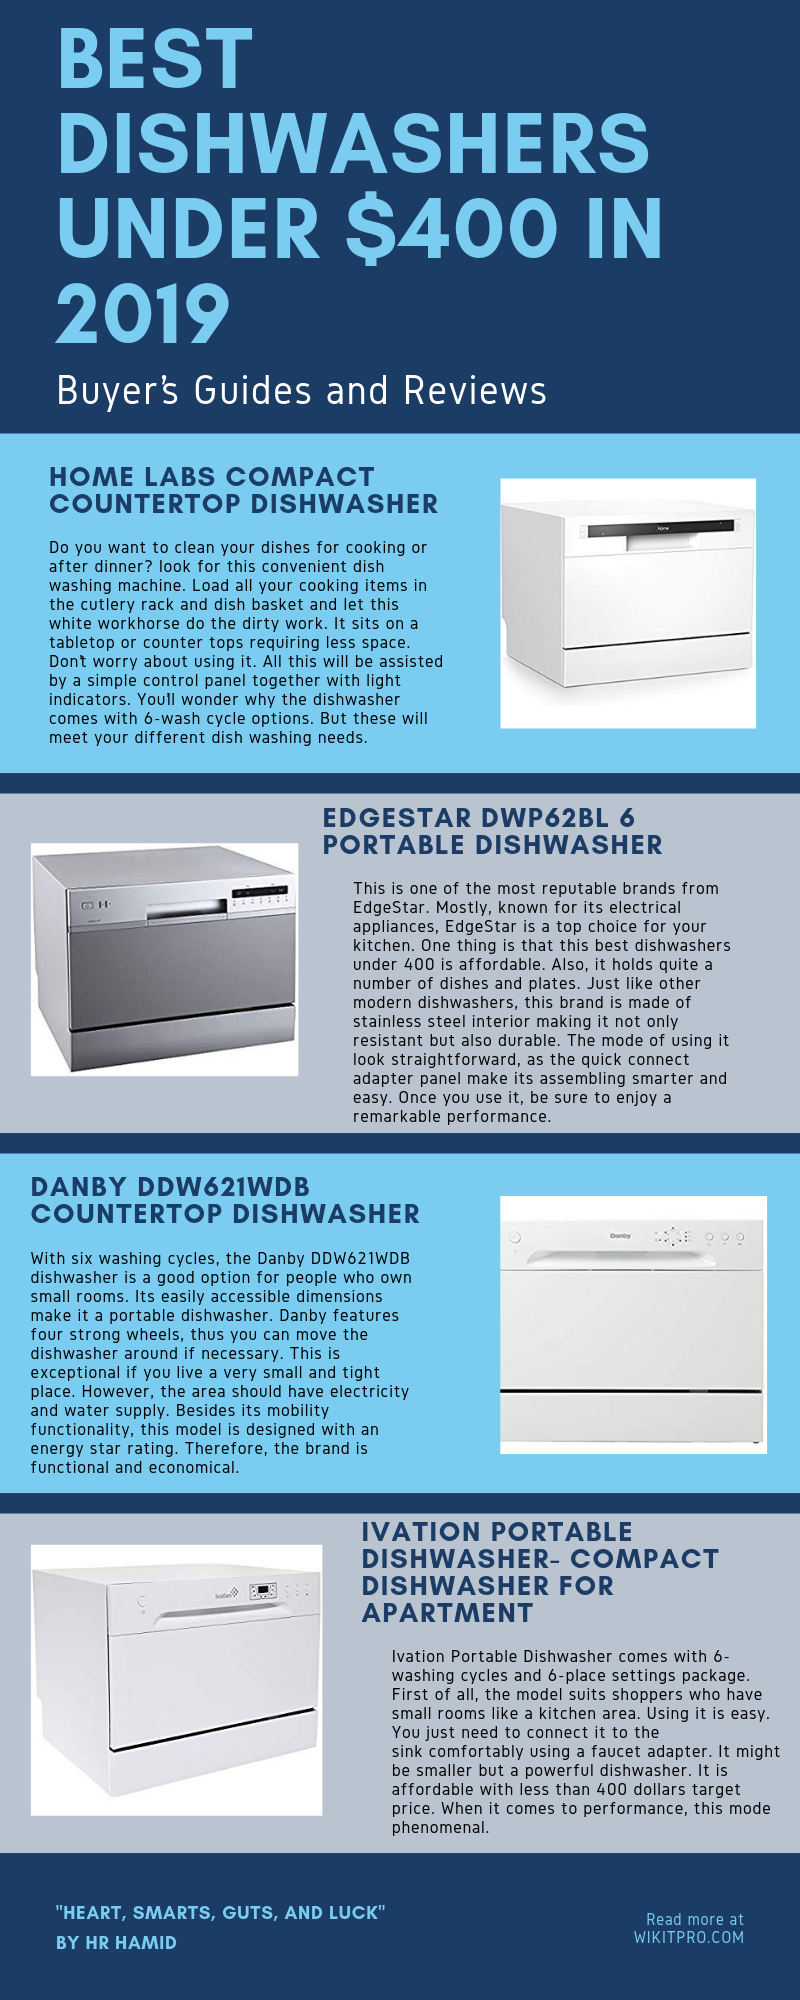 Best Dishwashers Under $400